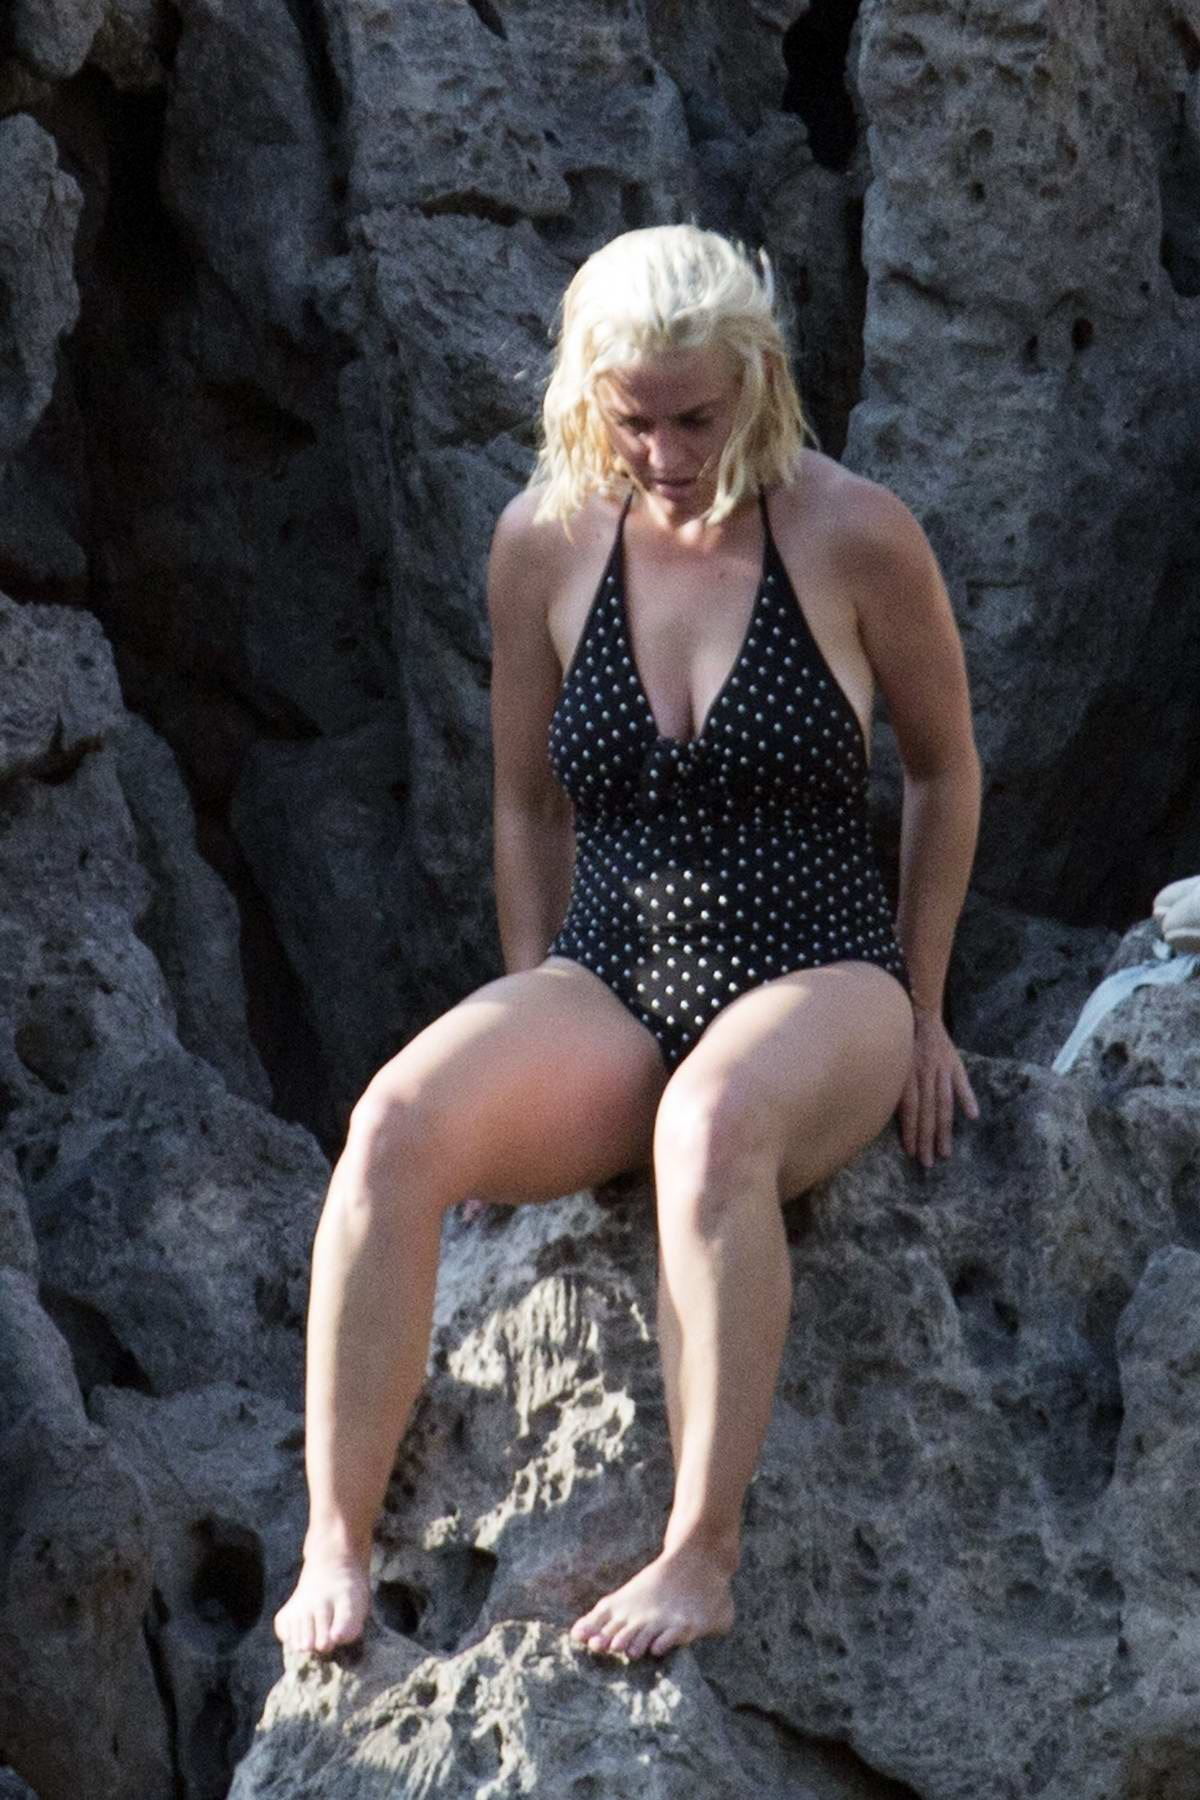 Katy Perry sports a polka dot swimsuit as she enjoys an adventurous day with Orlando Bloom in Mallorca, Spain